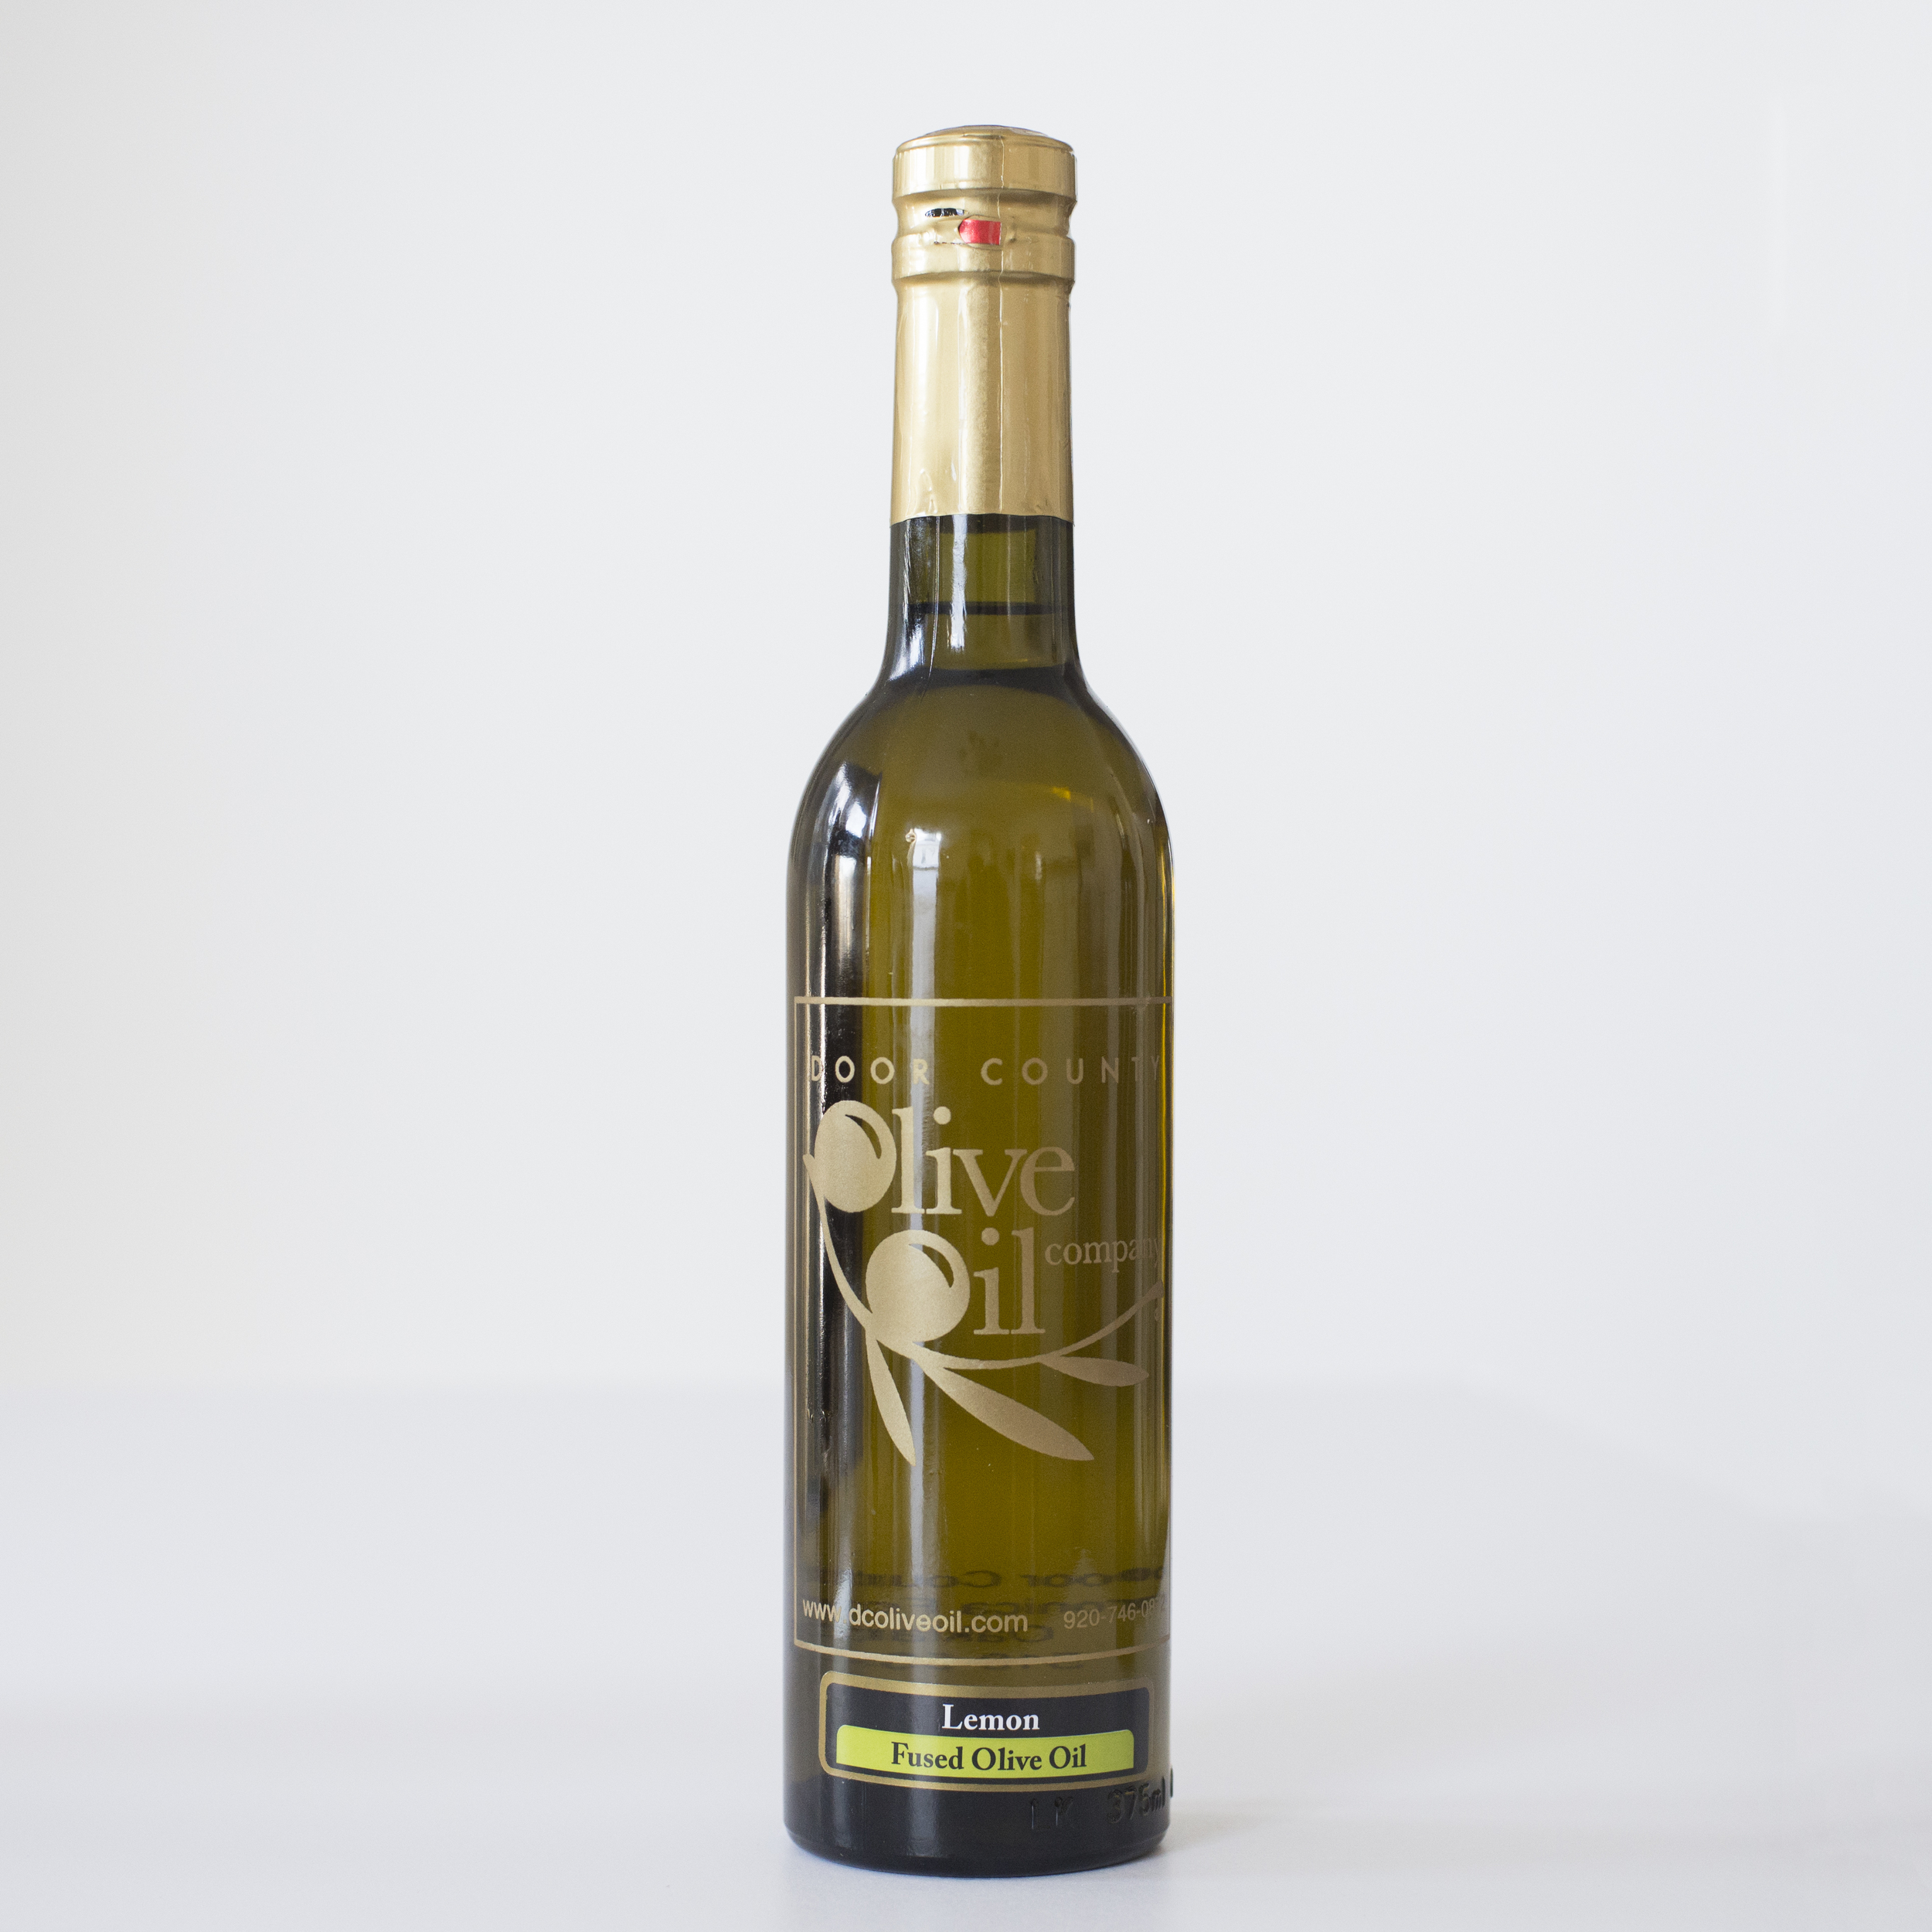 Meyer Lemon Olive Oil     Meyer Lemons are crushed together with fresh hand-harvested olives to make this amazing extra virgin olive oil.   Perfect for pasta, chicken, fish or salads. Try drizzling our Meyer Lemon Olive Oil over fresh asparagus or green beans.